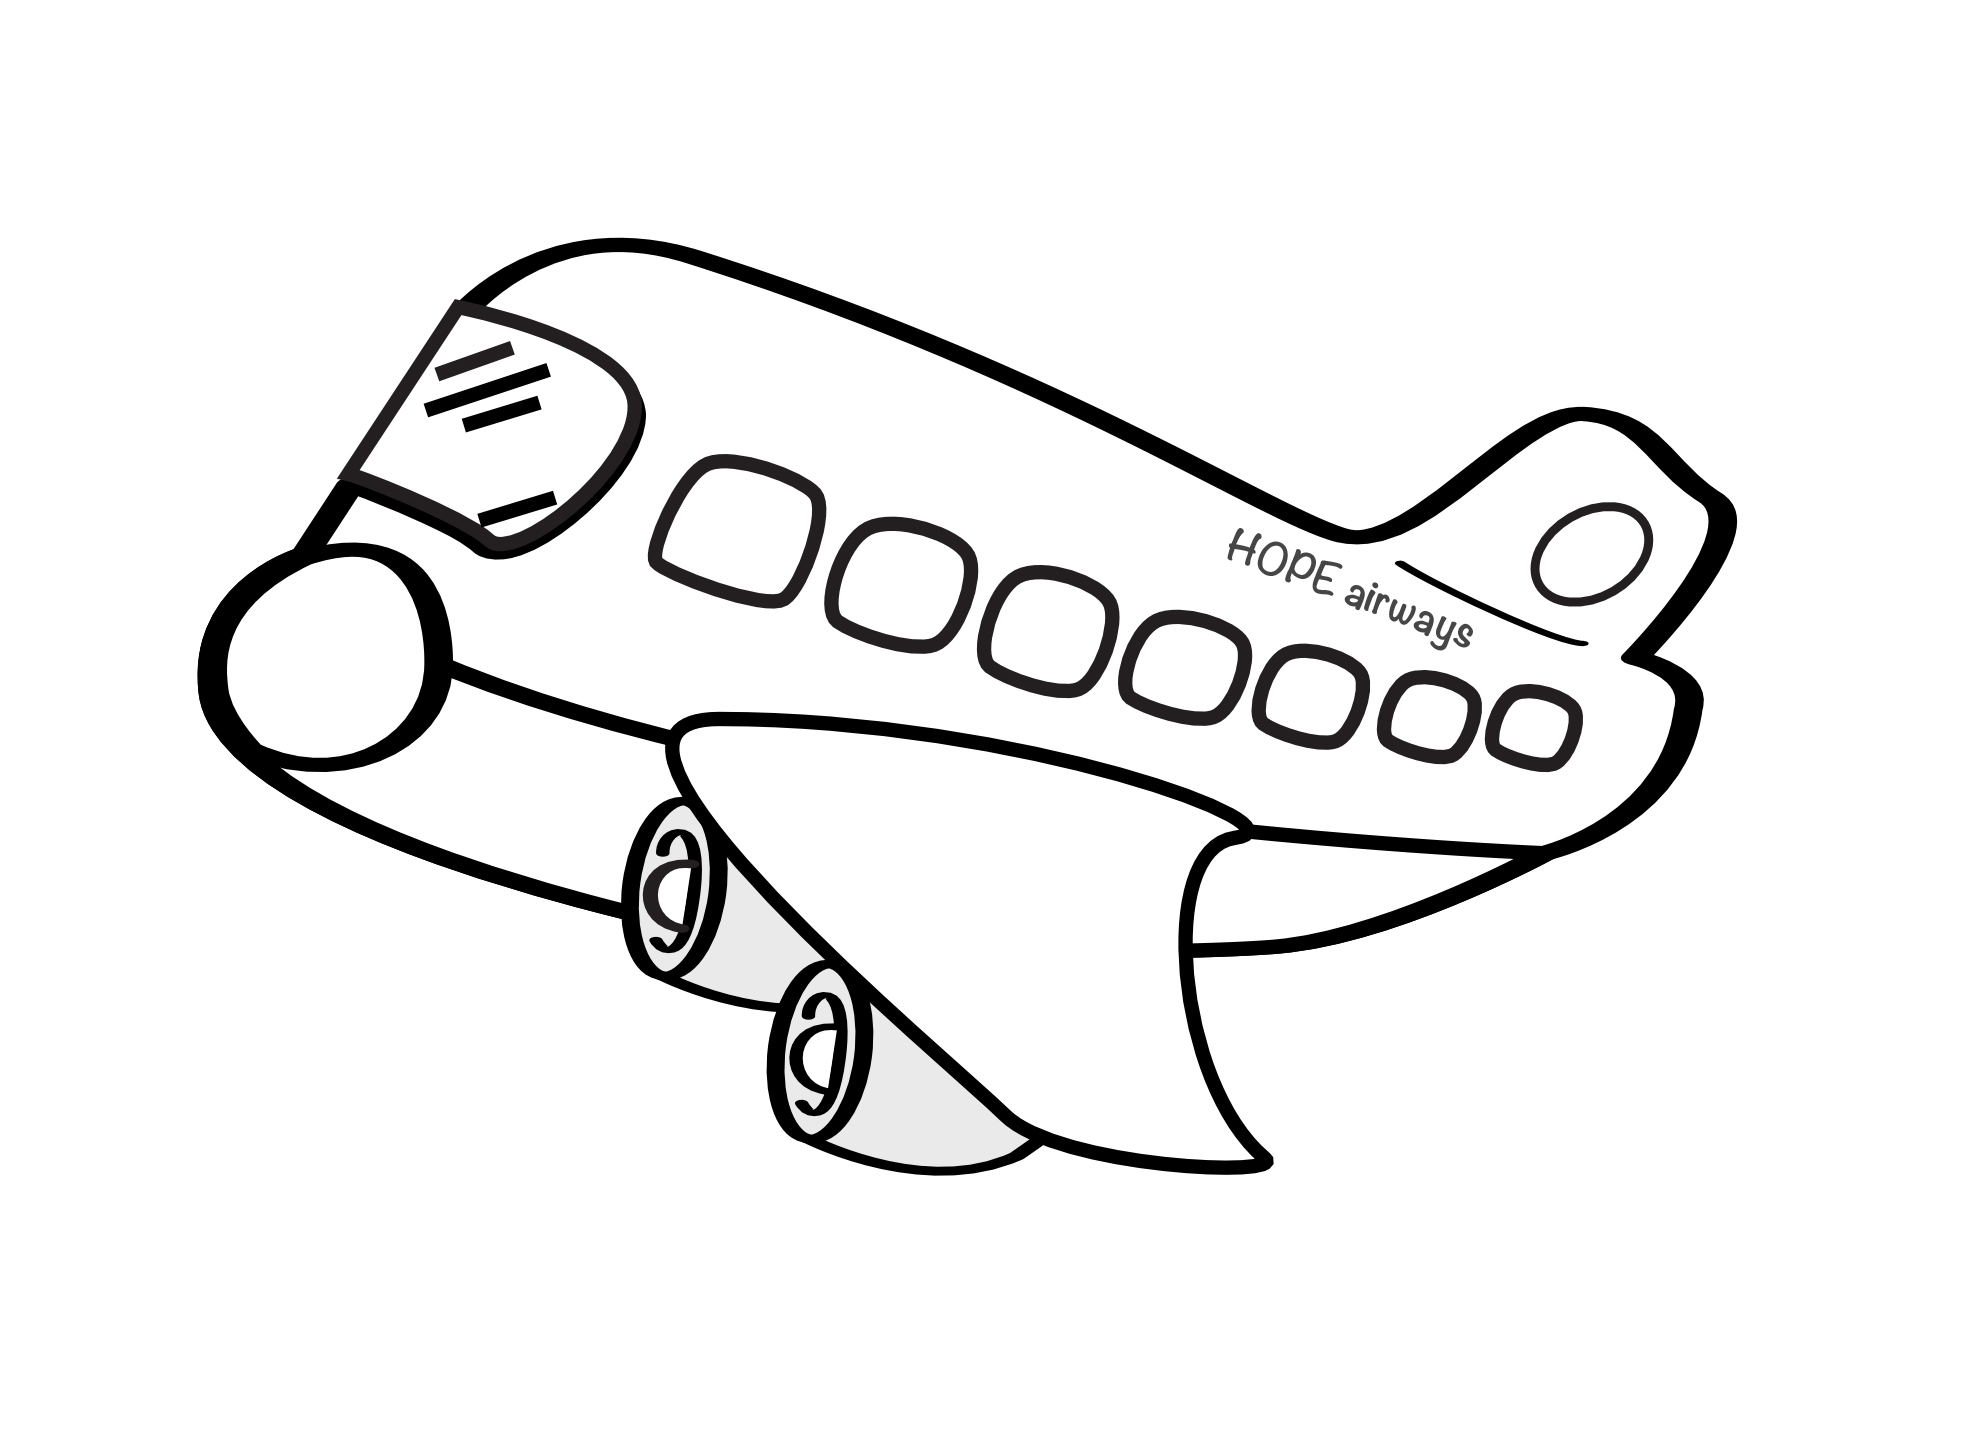 Free drawing pictures download. Airplane clipart simple